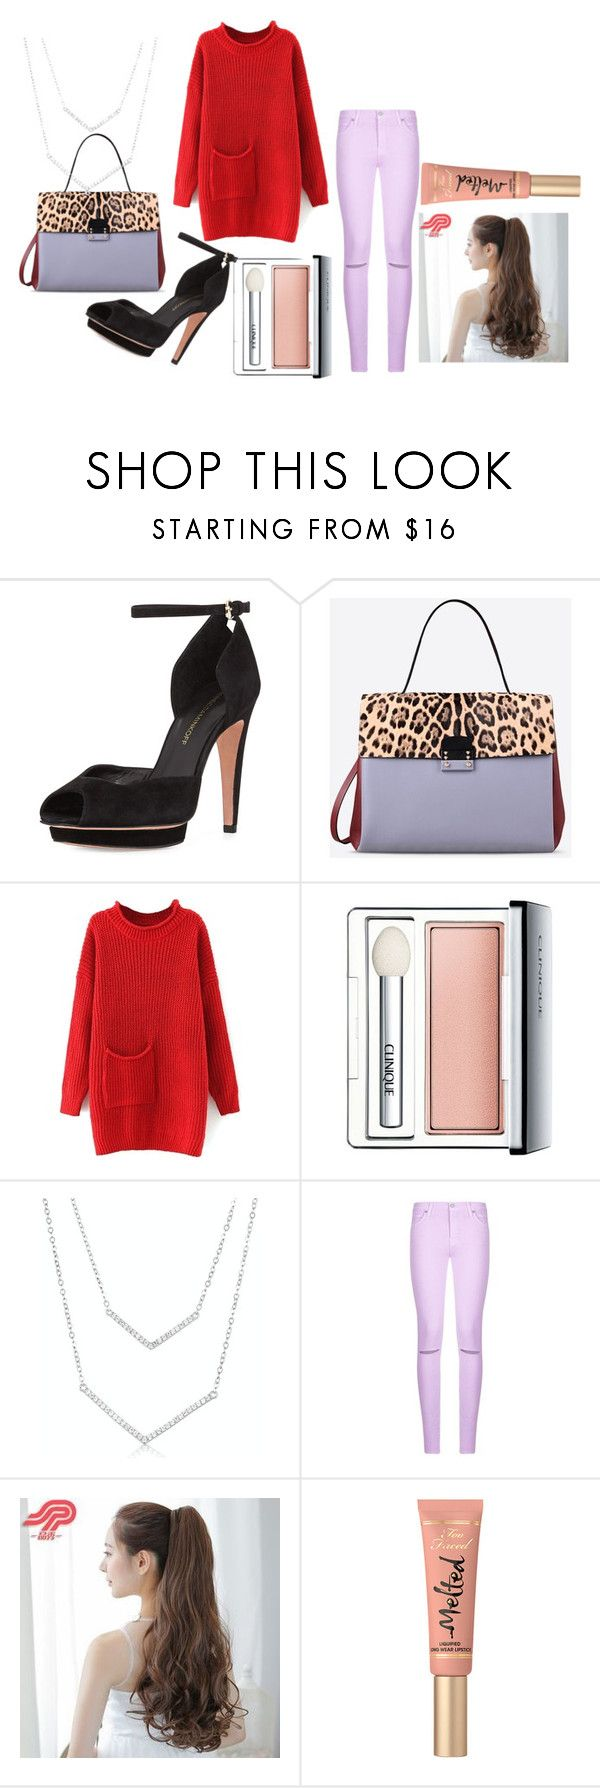 """Winter set 02: Duke game tonight! Wish I was there :)"" by anikivance ❤ liked on Polyvore featuring Rebecca Minkoff, Valentino, Clinique, 7 For All Mankind, Pin Show and Too Faced Cosmetics"